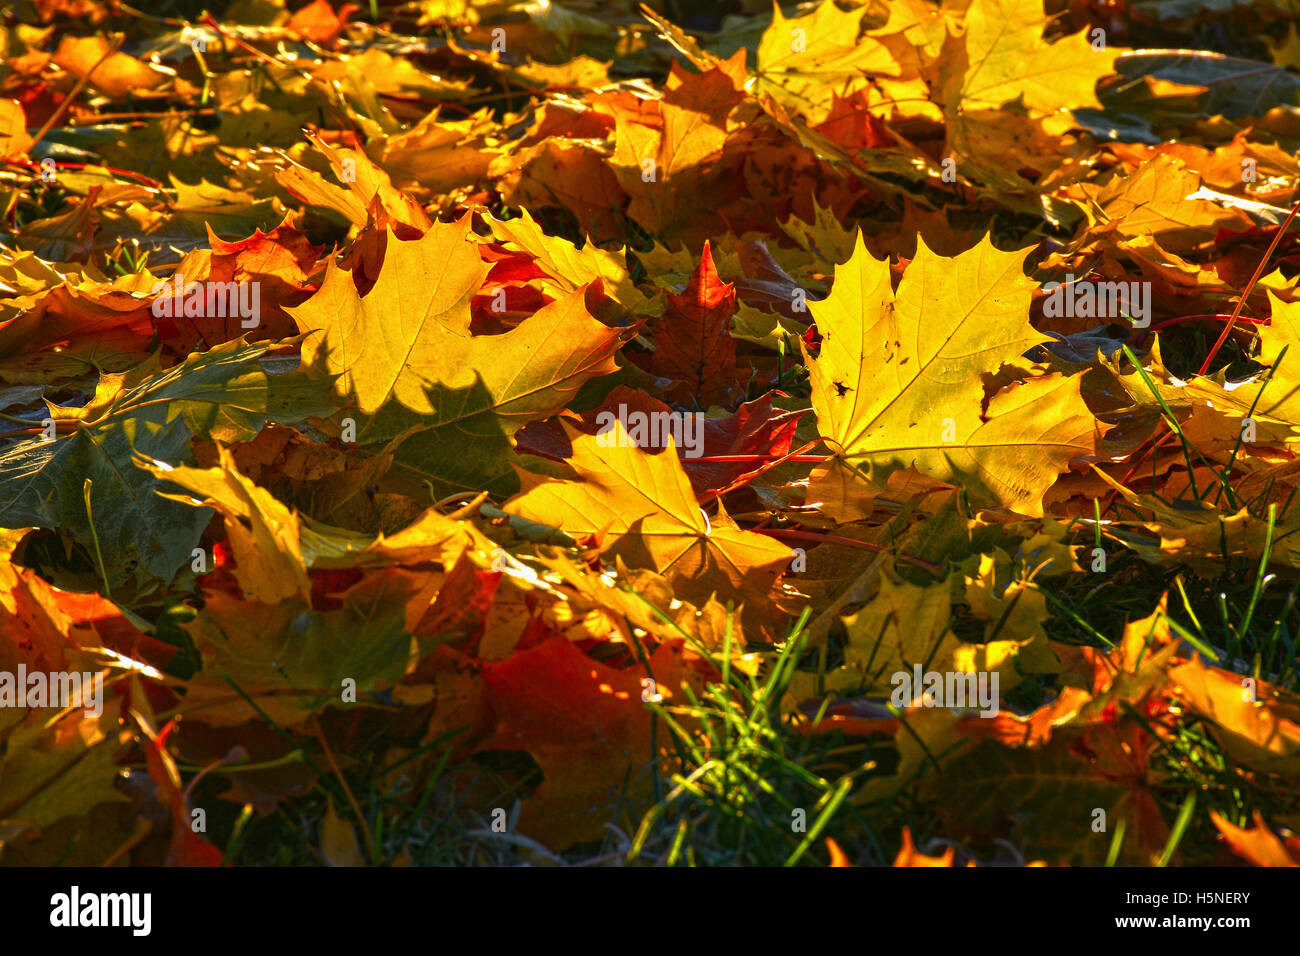 Fallen yellow maple leaves on a frosty morning on the grass. - Stock Image